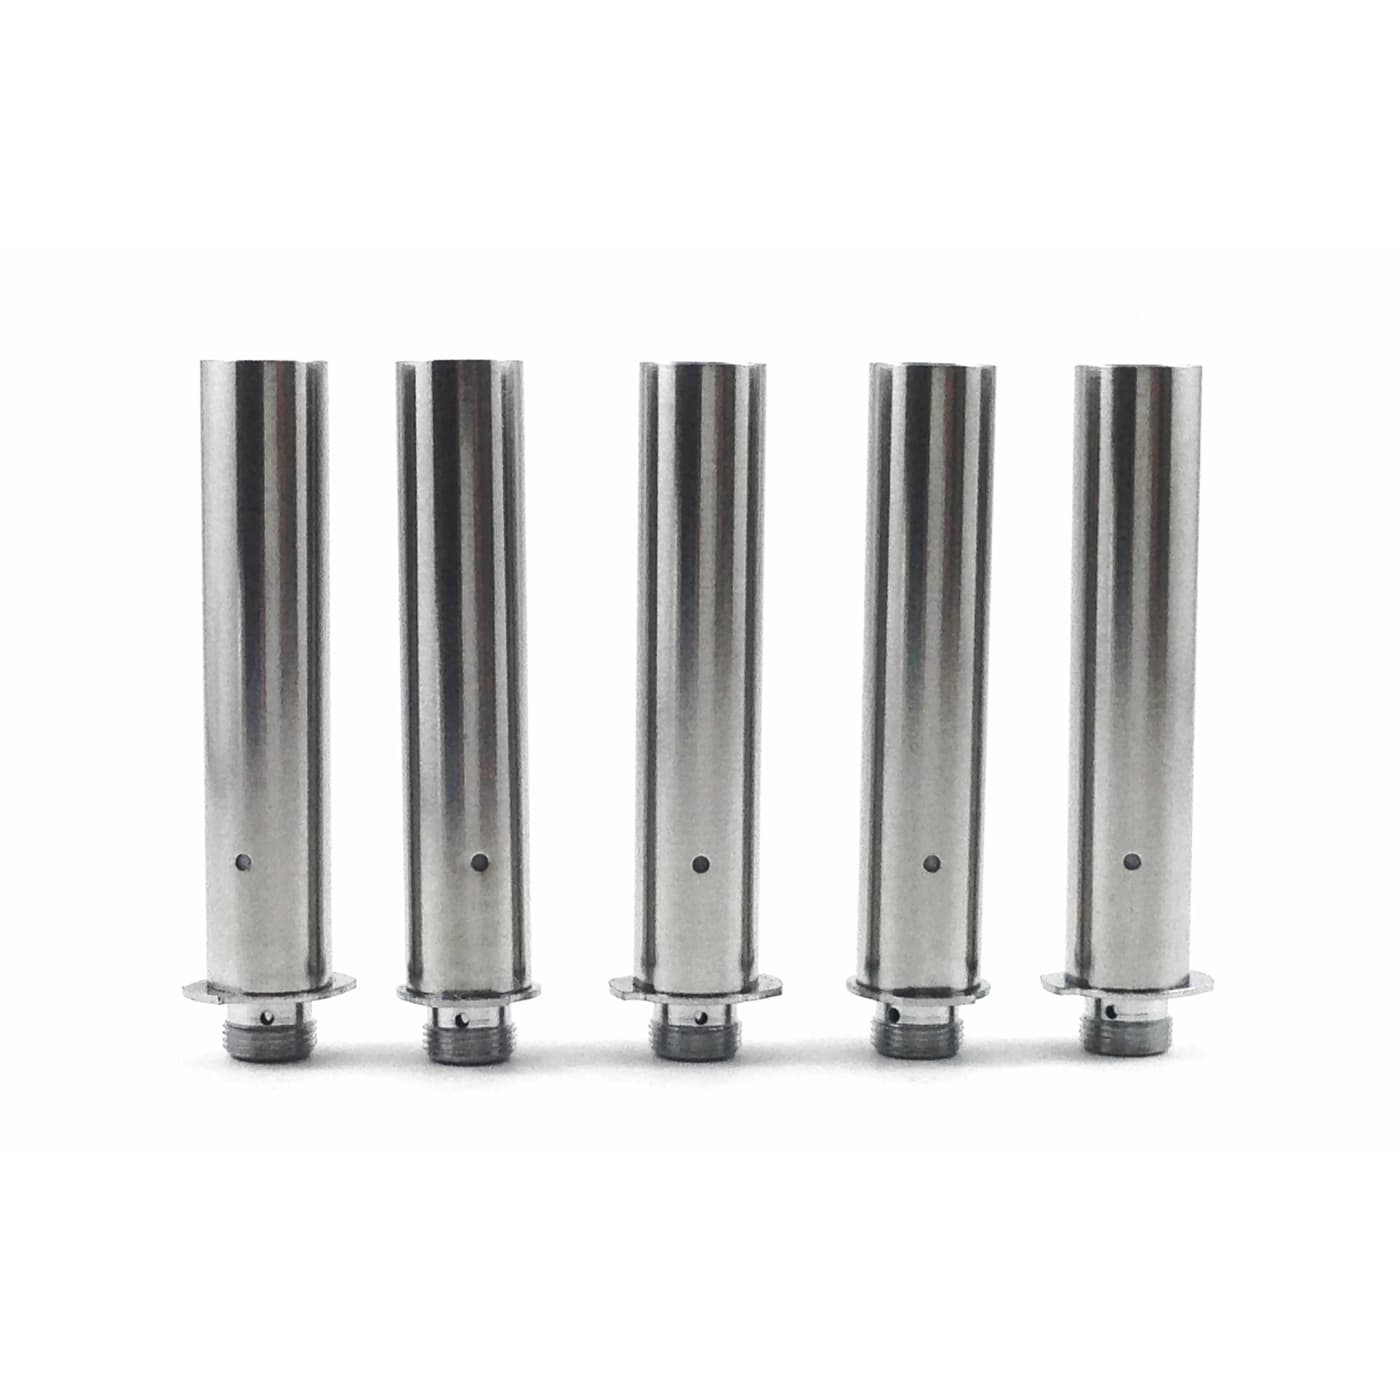 Boge F16 V2 Pre-Punched Replacement Cartomizer 5 Pack